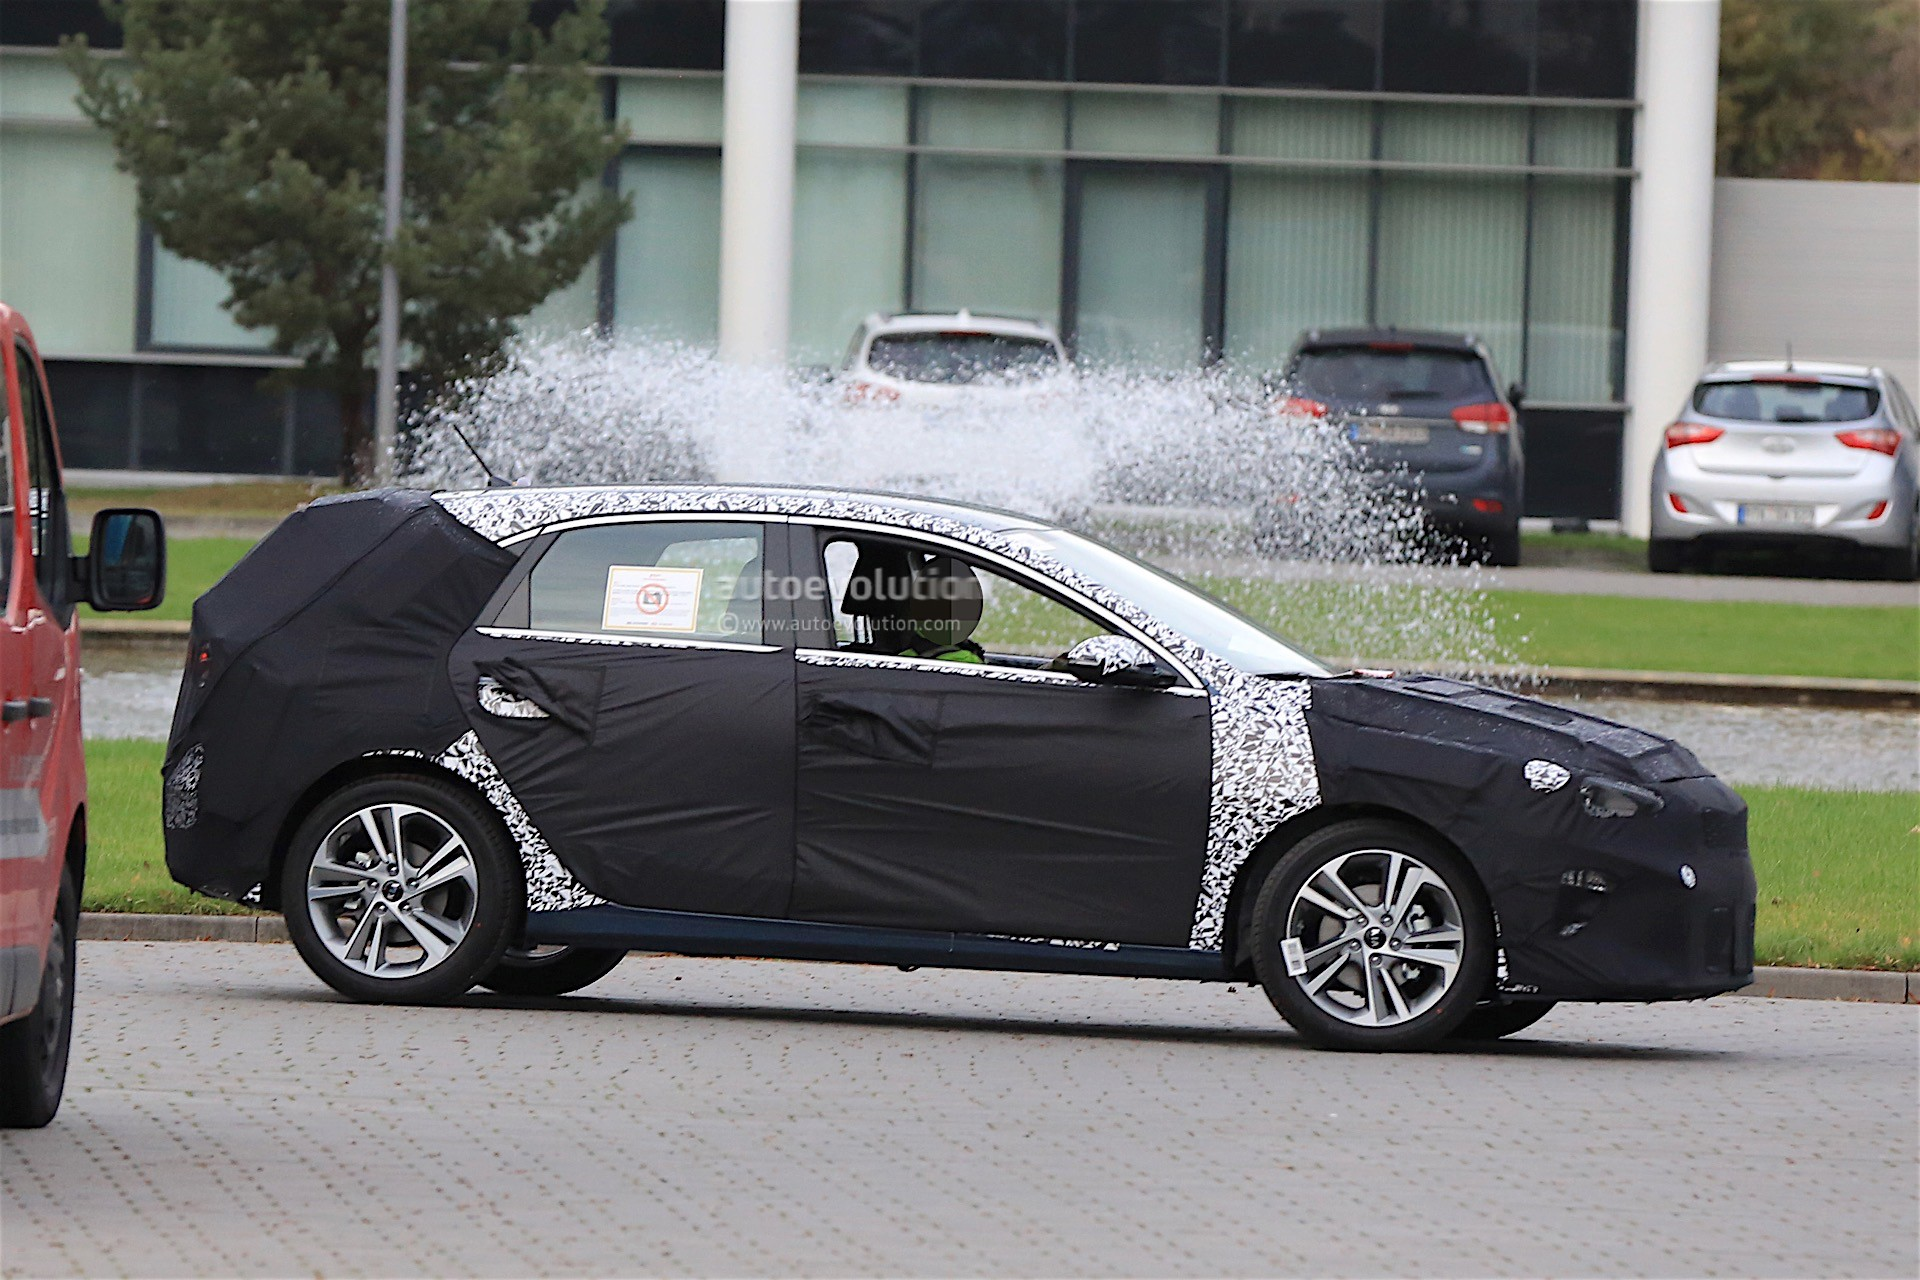 2018 Kia Cee'd Caught On Video Next To New Hyundai i30 And ...